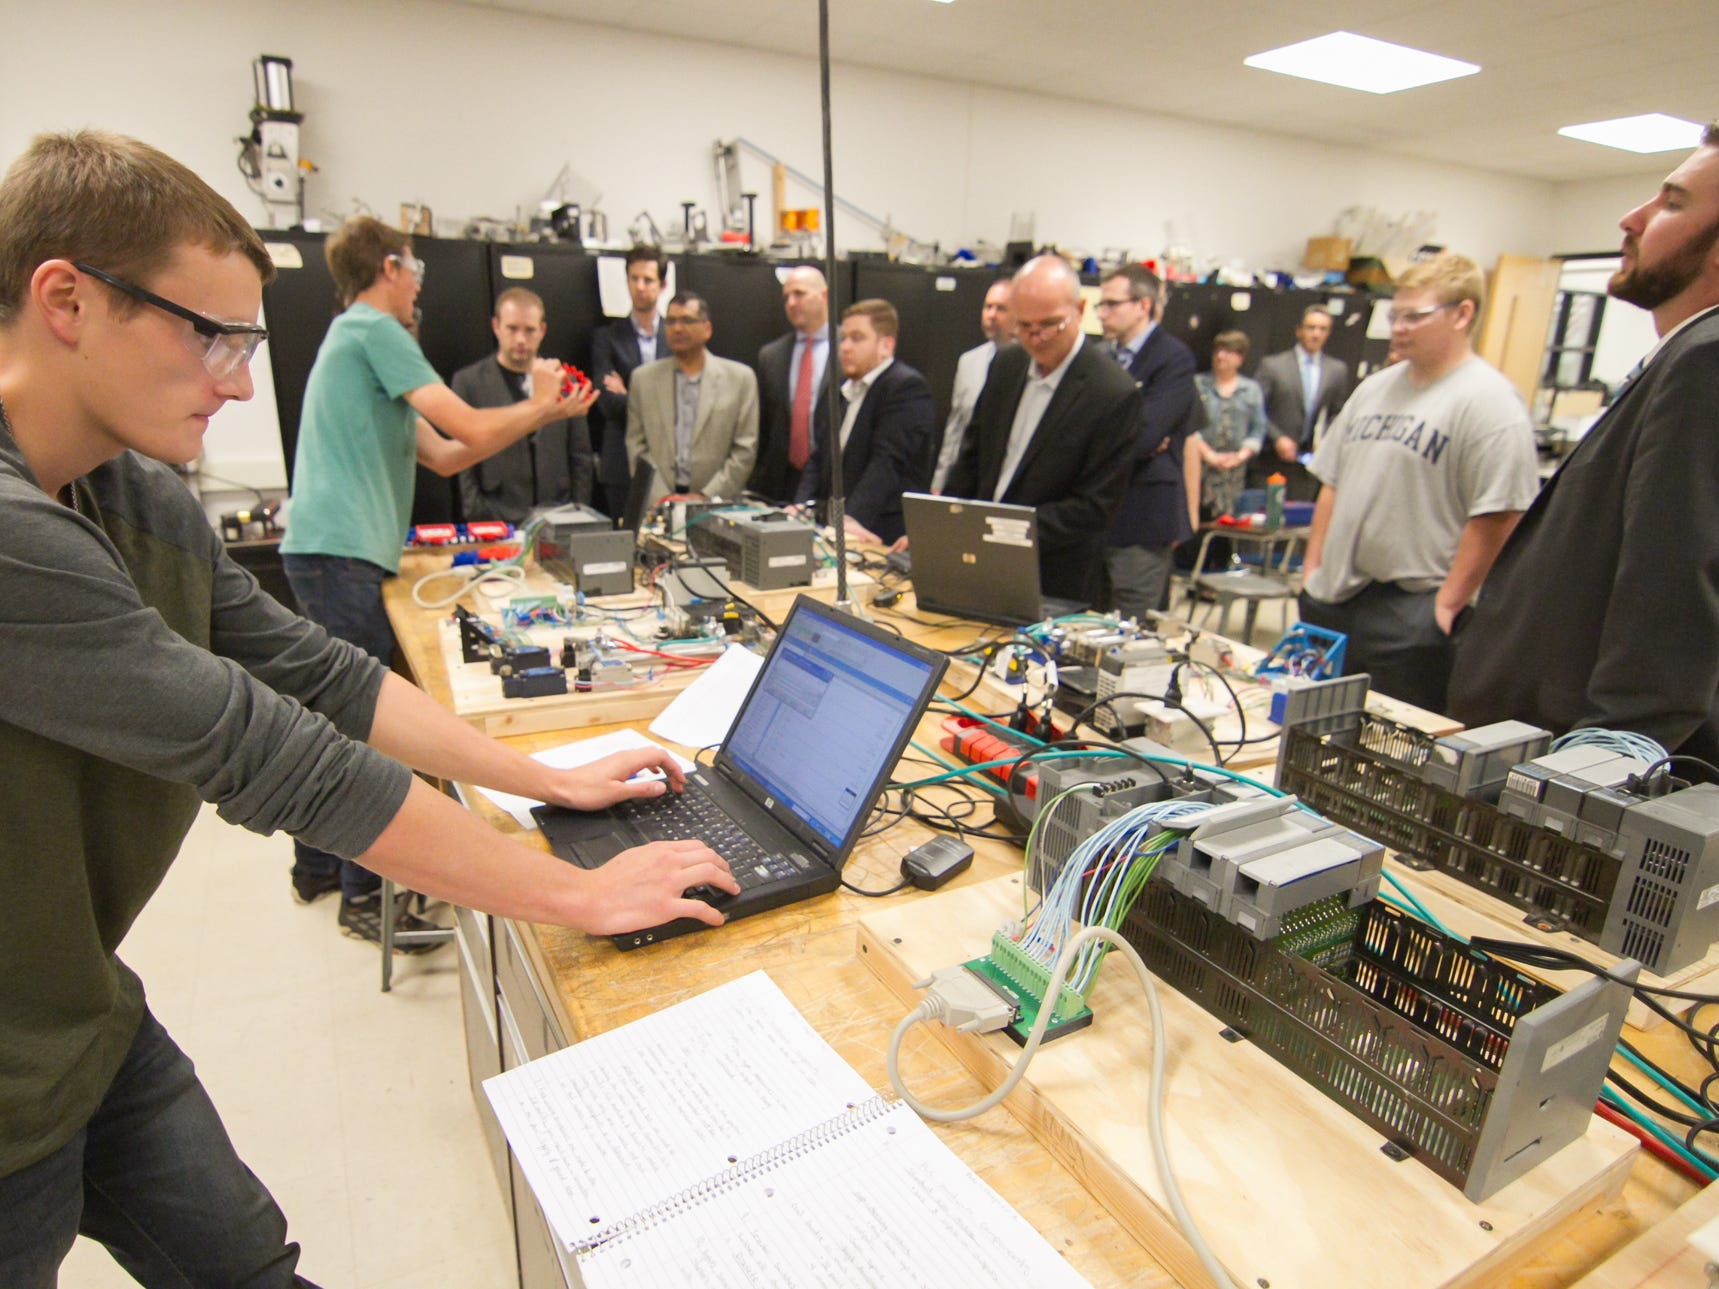 Pinckney Cyber Training Institute junior Nick Cortez (foreground) works on a program to run a robotic process Tuesday, Oct. 9, 2018, with senior Blake Mahnken in the background as students show what they're learningin the program to IBM executives touring the facility at Pinckney Community High School.